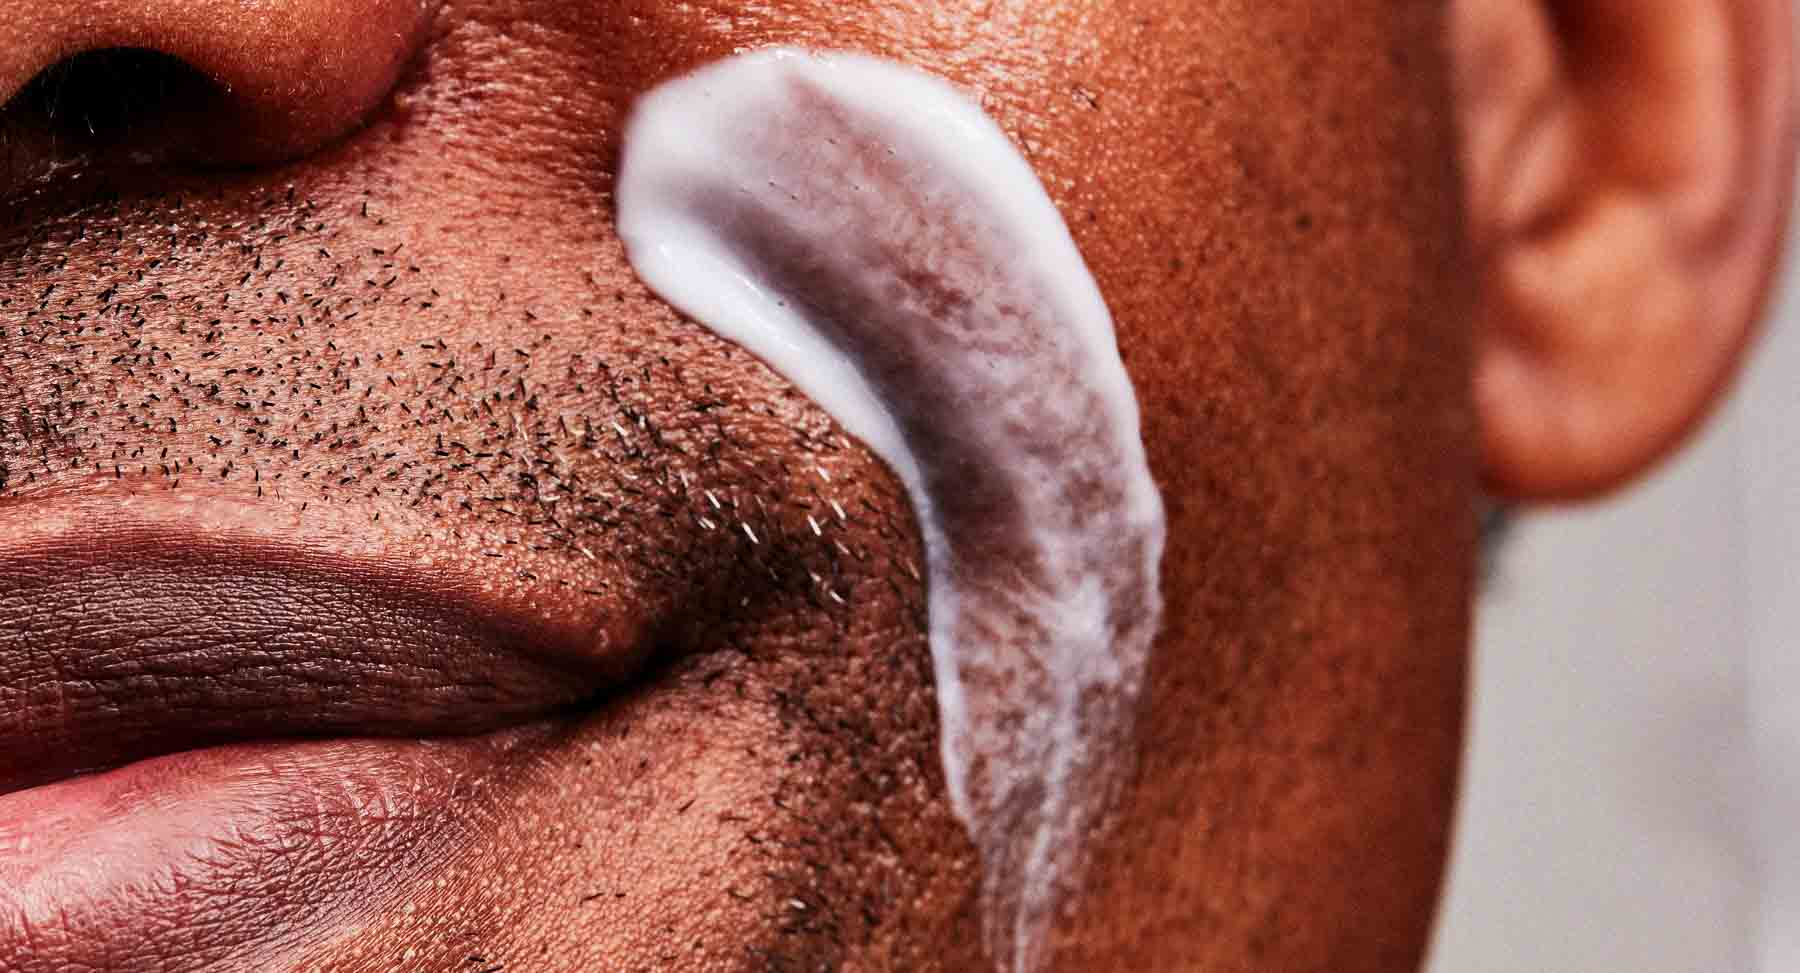 Acne Scars 101: Causes, Types, Treatments and Prevention Tips